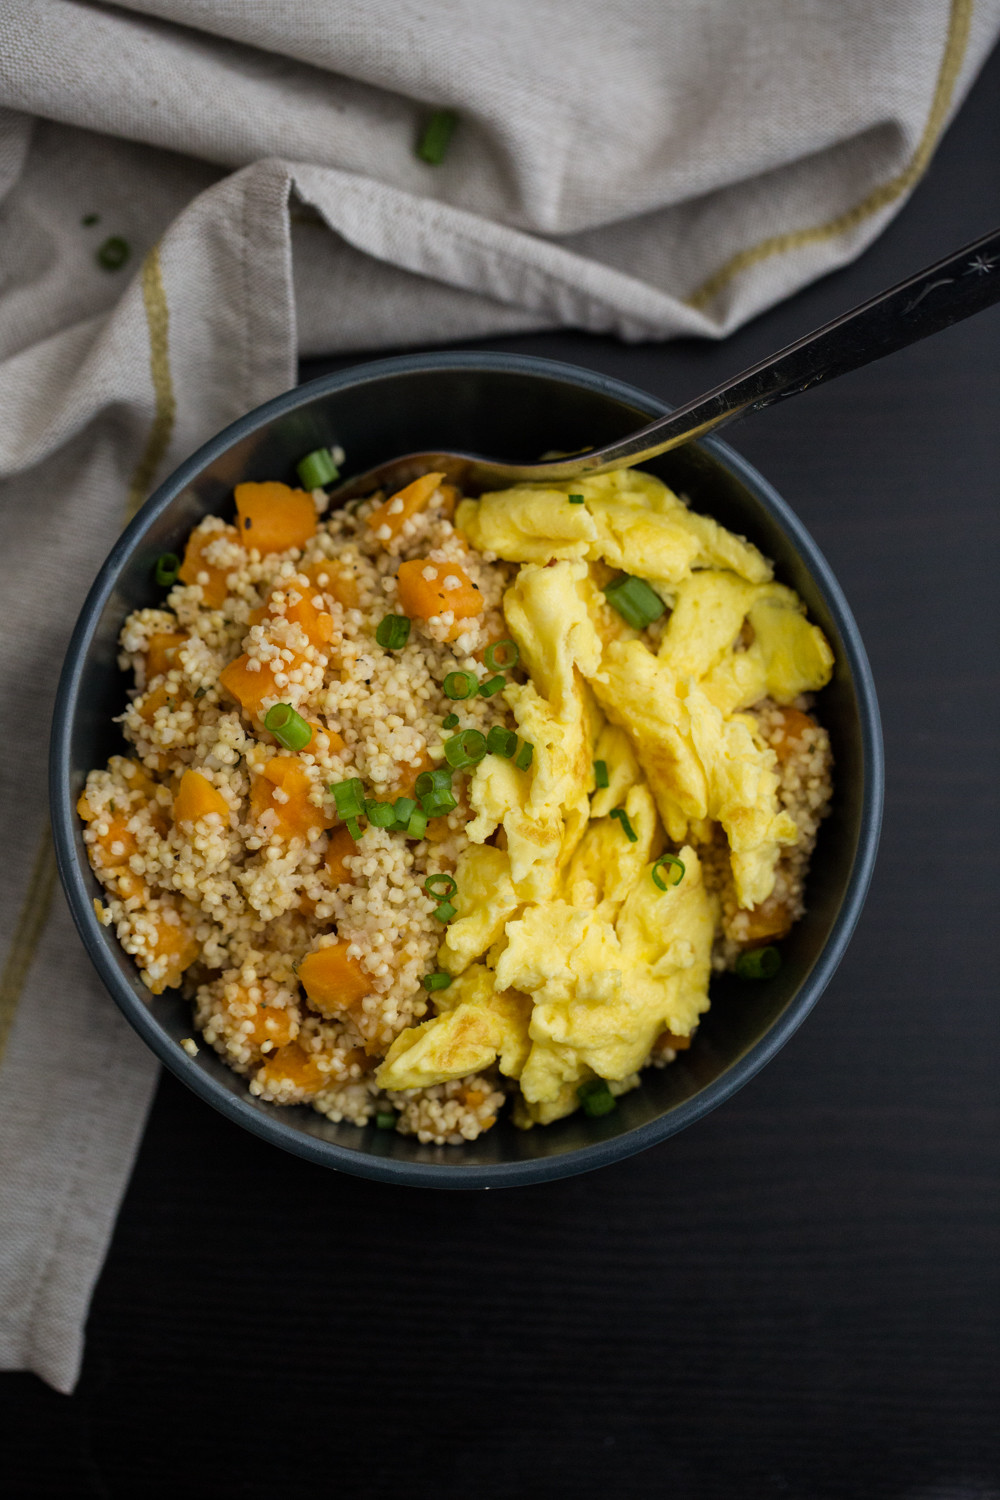 Healthy Breakfast Bowl Recipe  A Healthy Breakfast Bowl Recipe That s Oh So forting